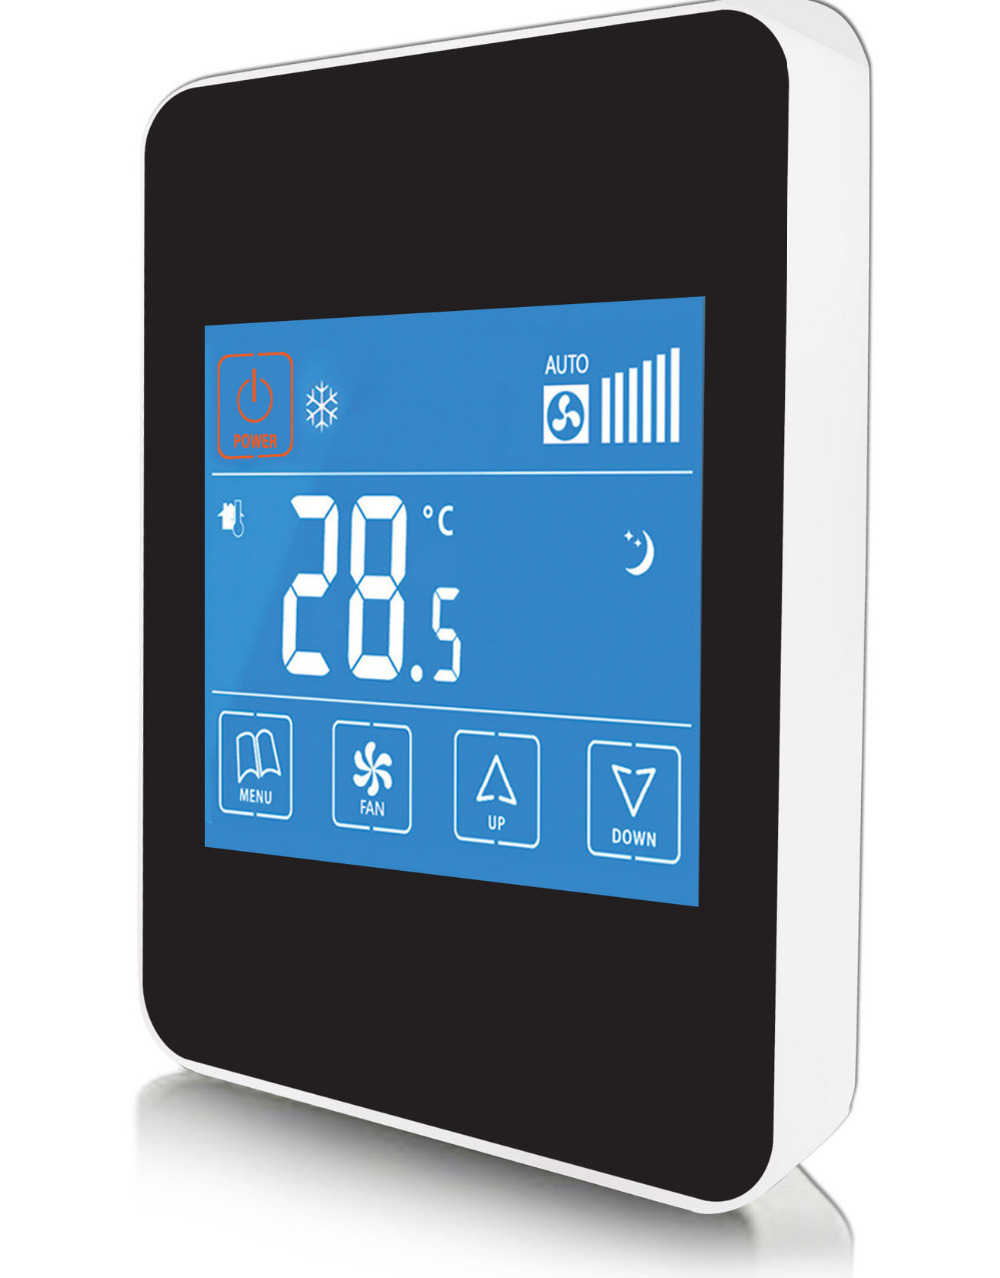 Memory function full capacitance screen intelligent touch control thermostat regulator